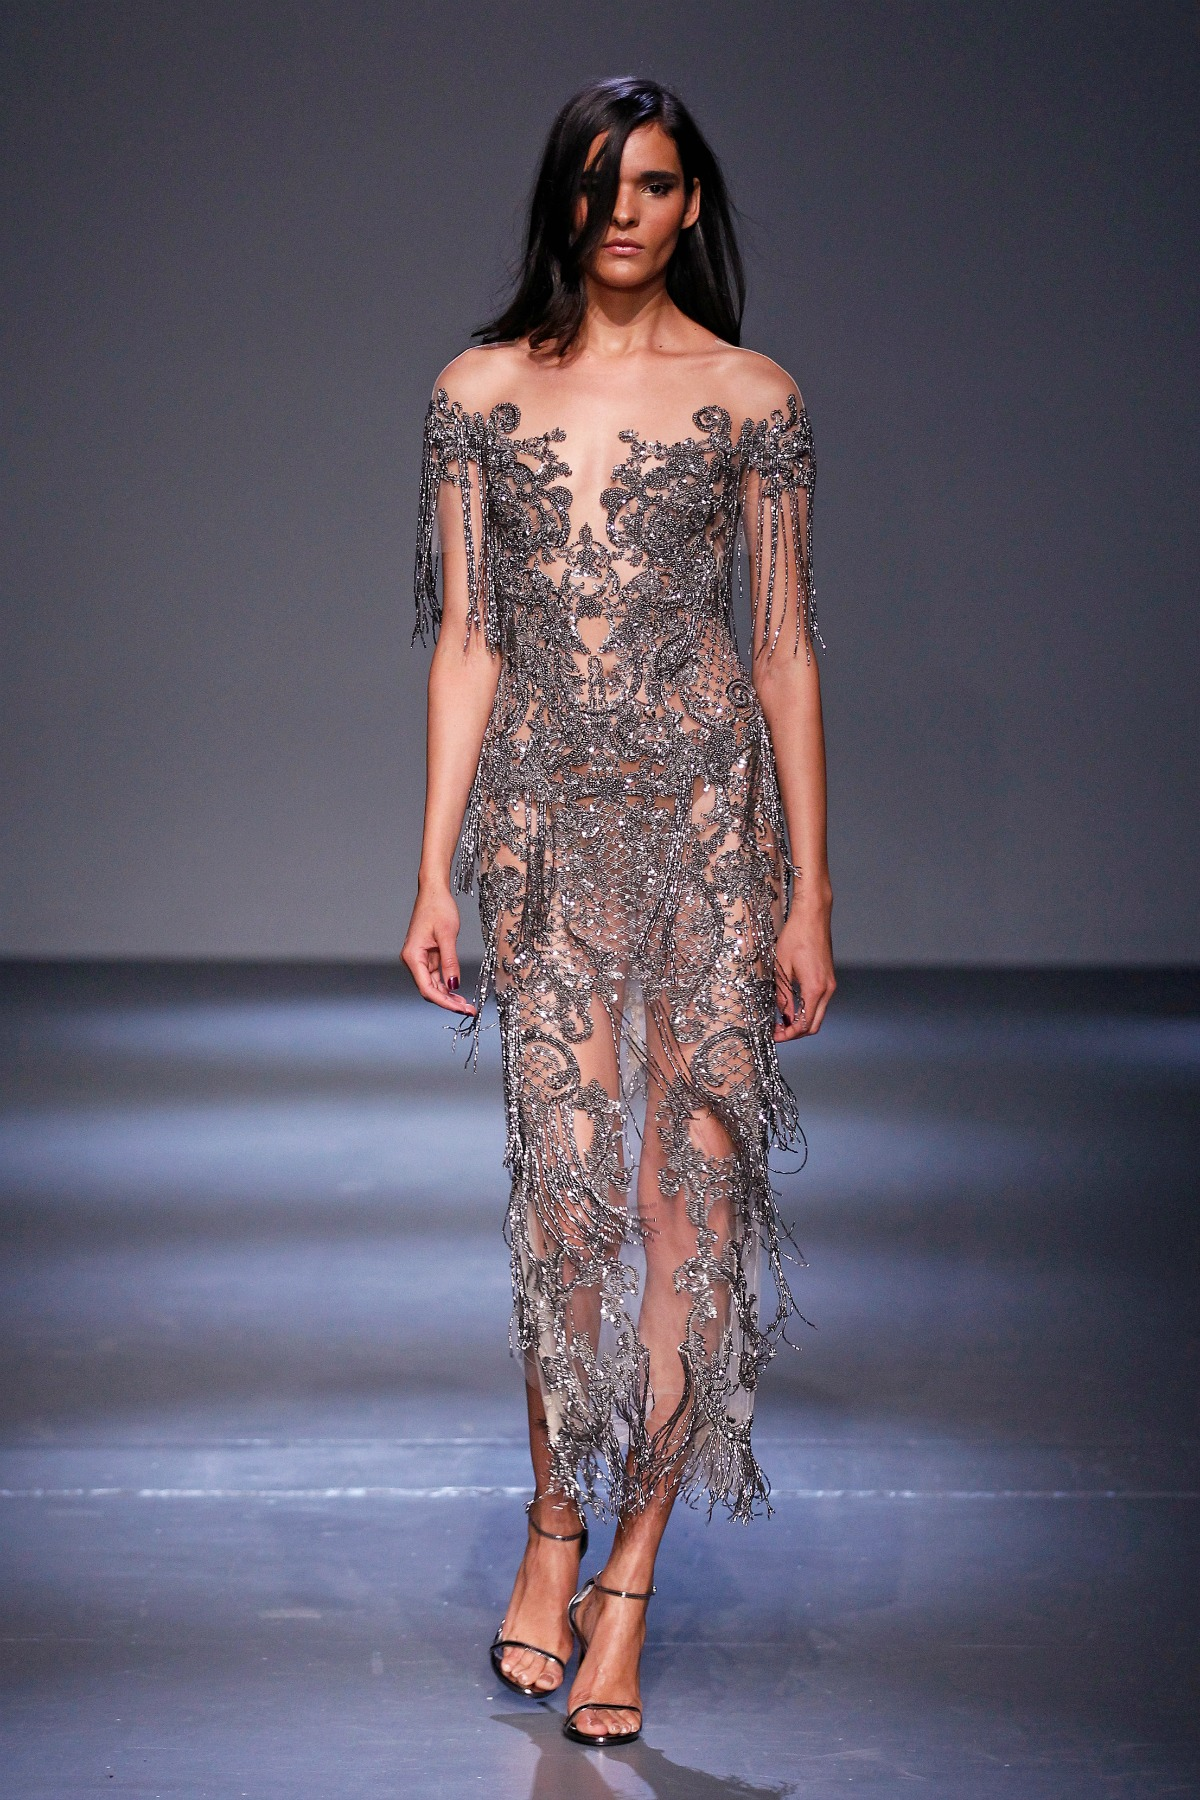 Pamella Roland Fall 2018 Runway I Barogue Metallic Fringe Gown #NYFW #WinterFashion